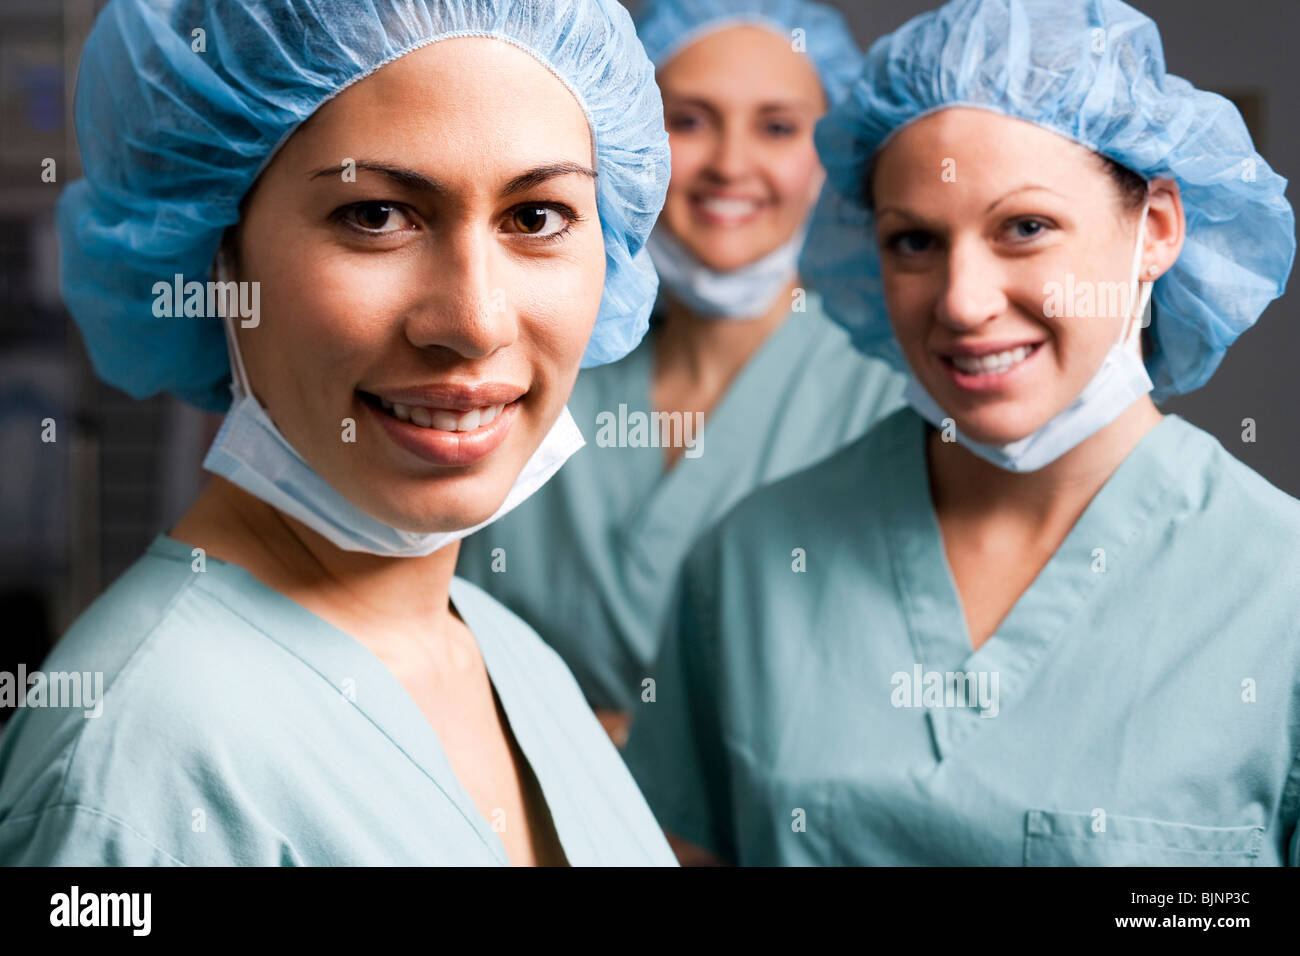 Medical personnel in operating room - Stock Image